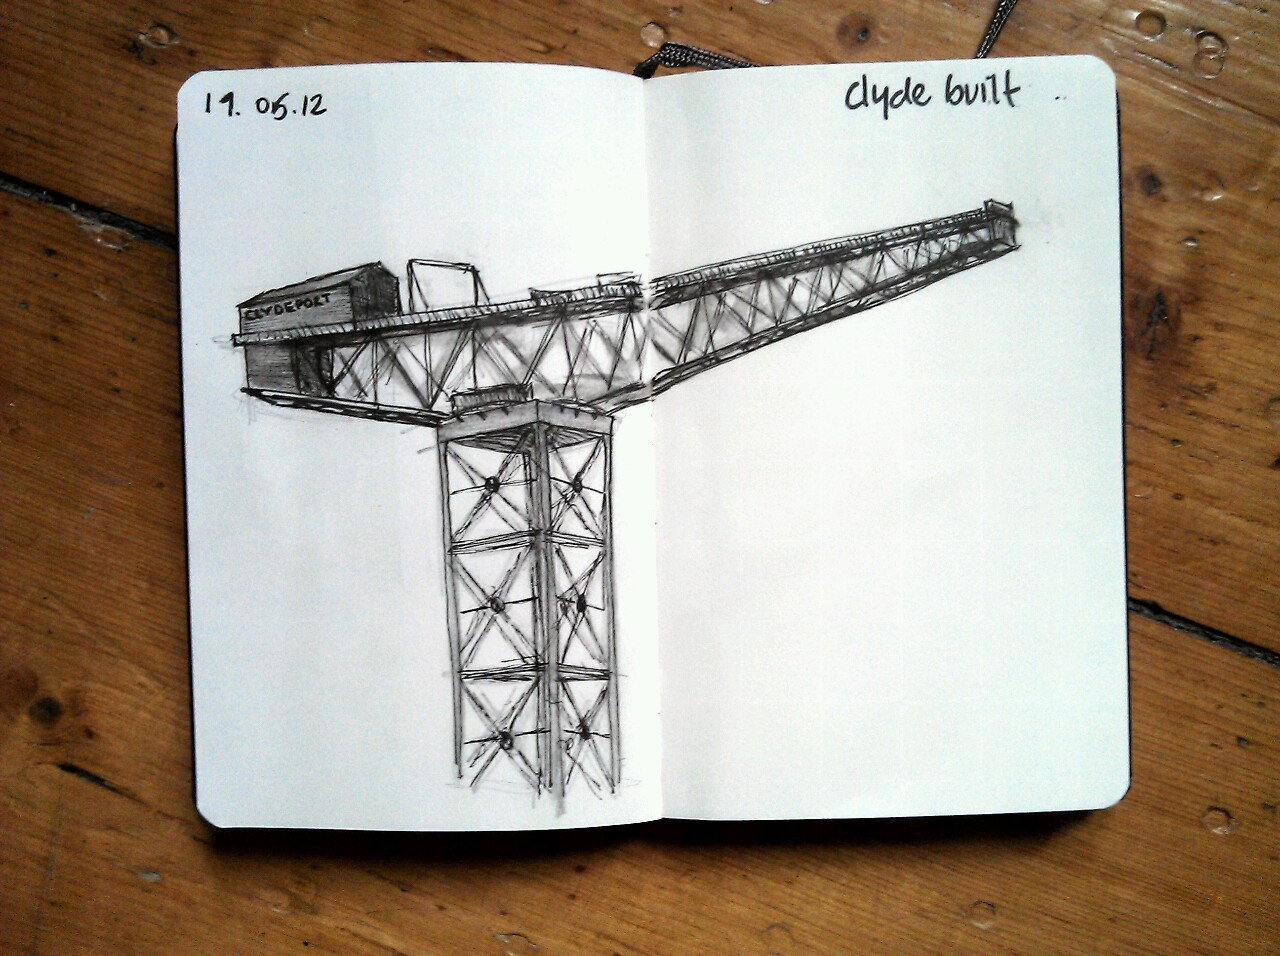 365 drawings later … day 109 … clyde built